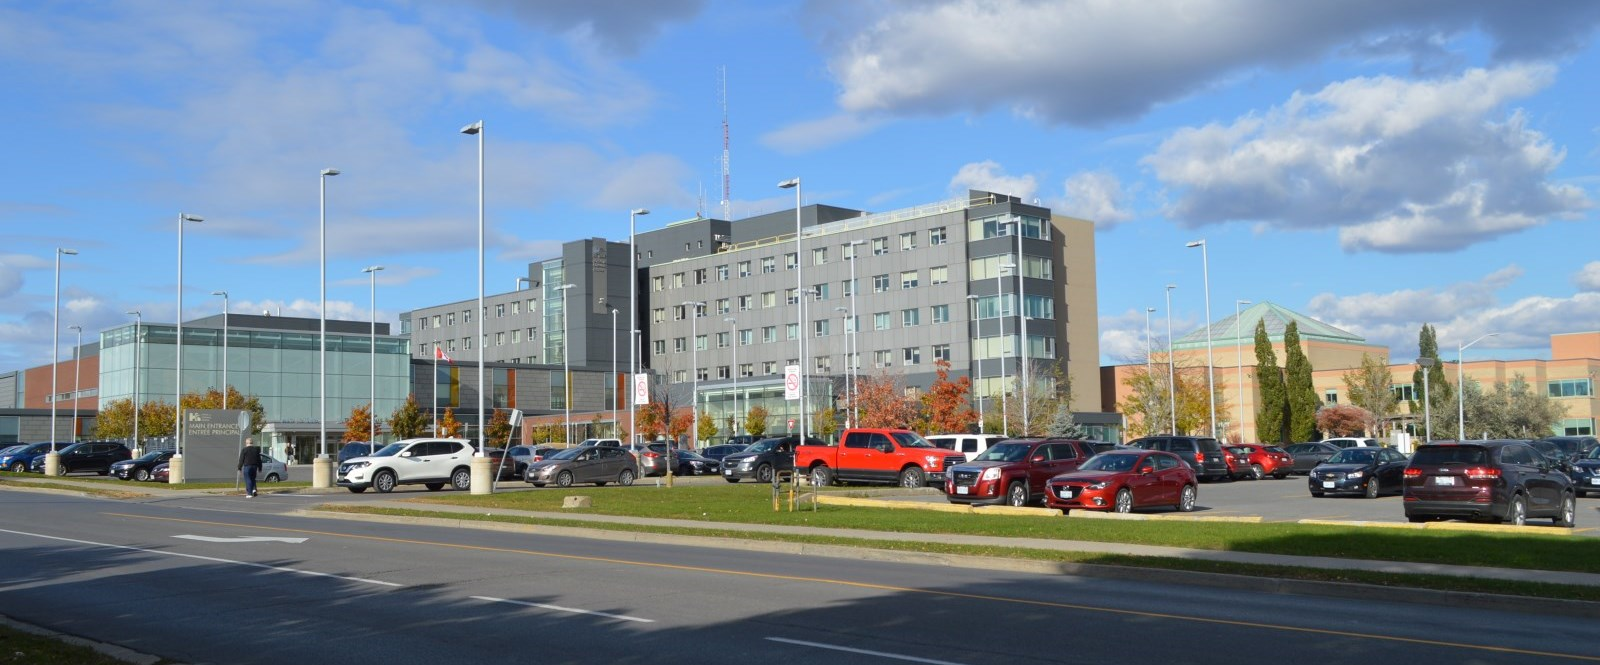 Cornwall Community Hospital as seen from across McConnell Avenue